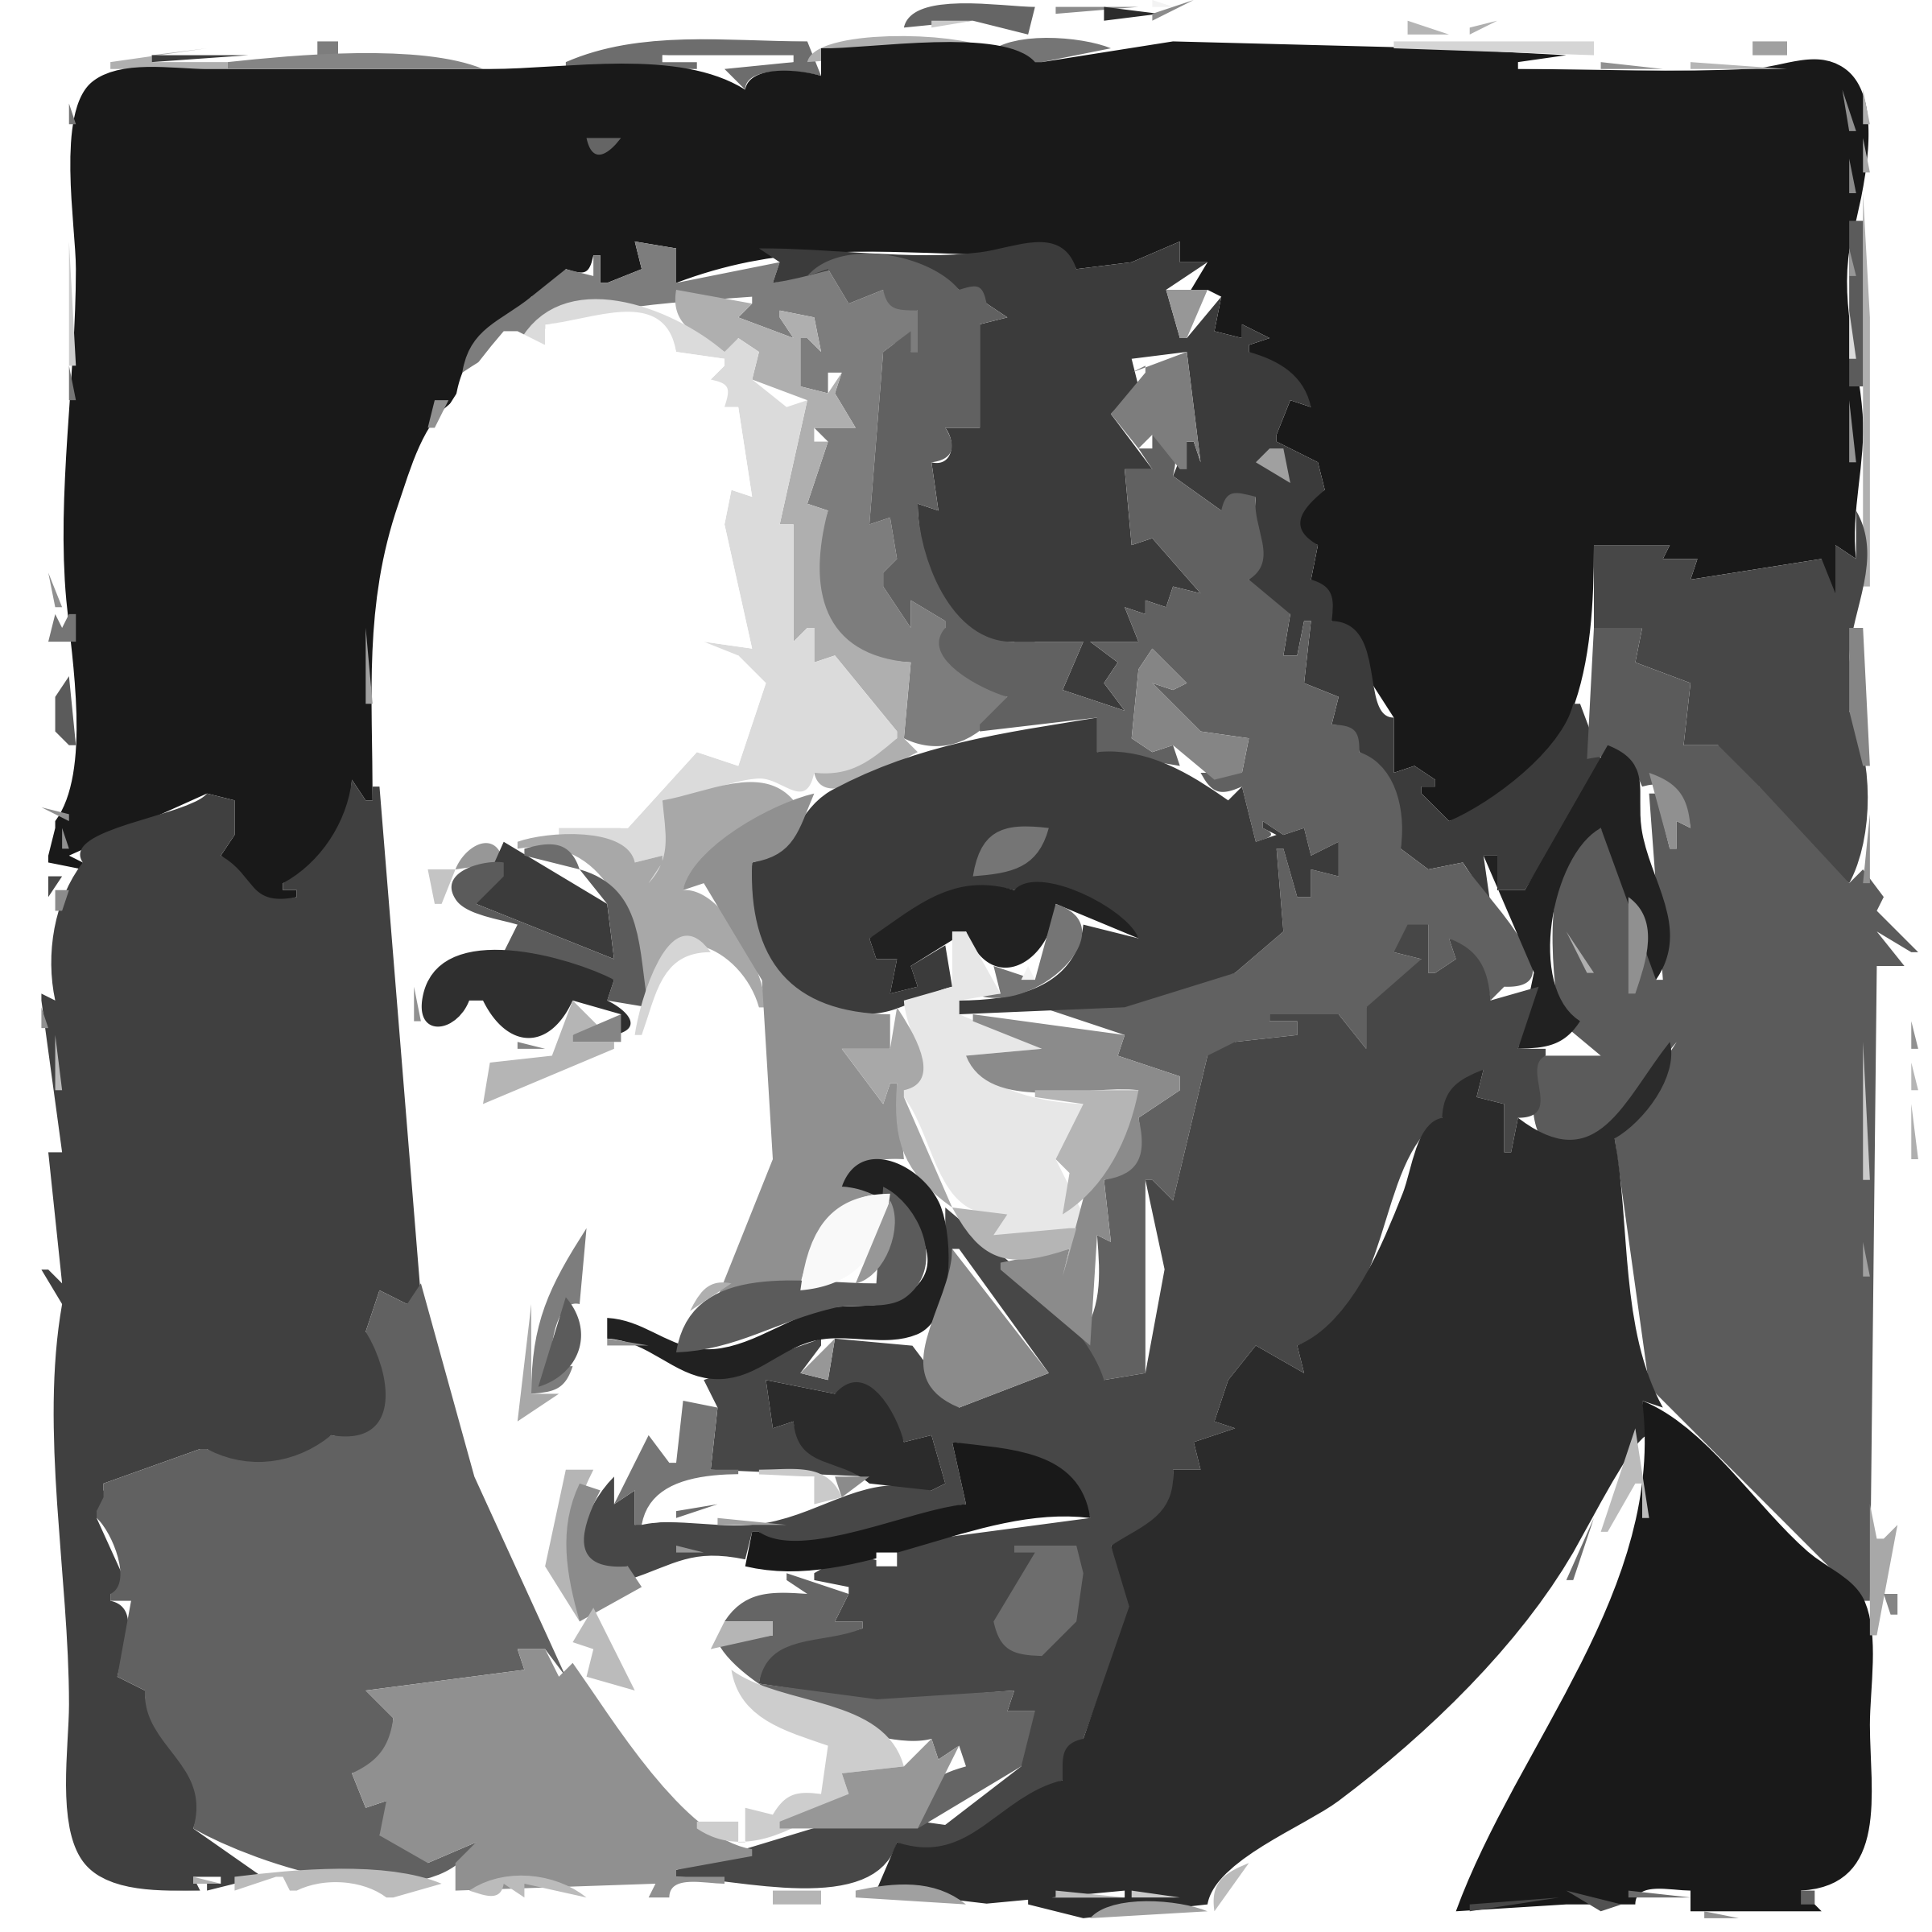 Cliparts download clip art. Free clipart dr martin luther king